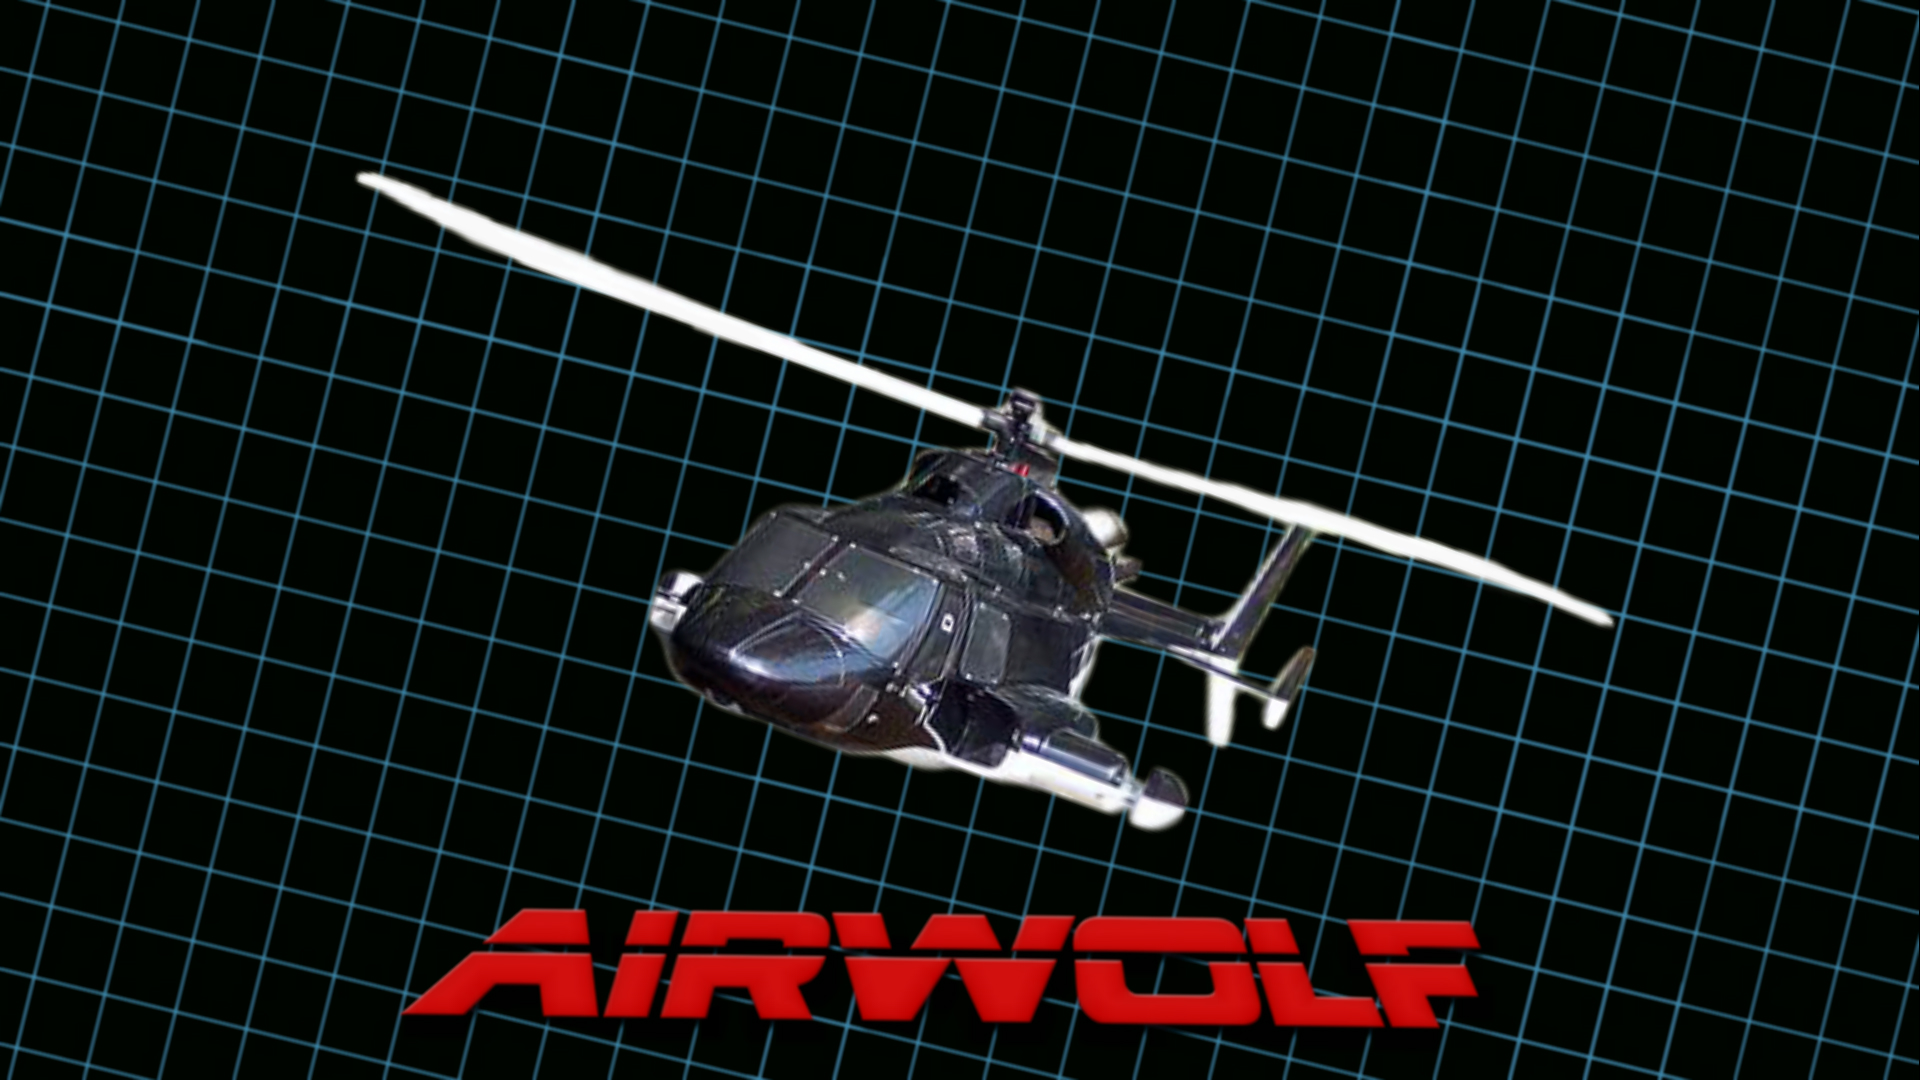 HD wallpapers airwolf wallpaper hd